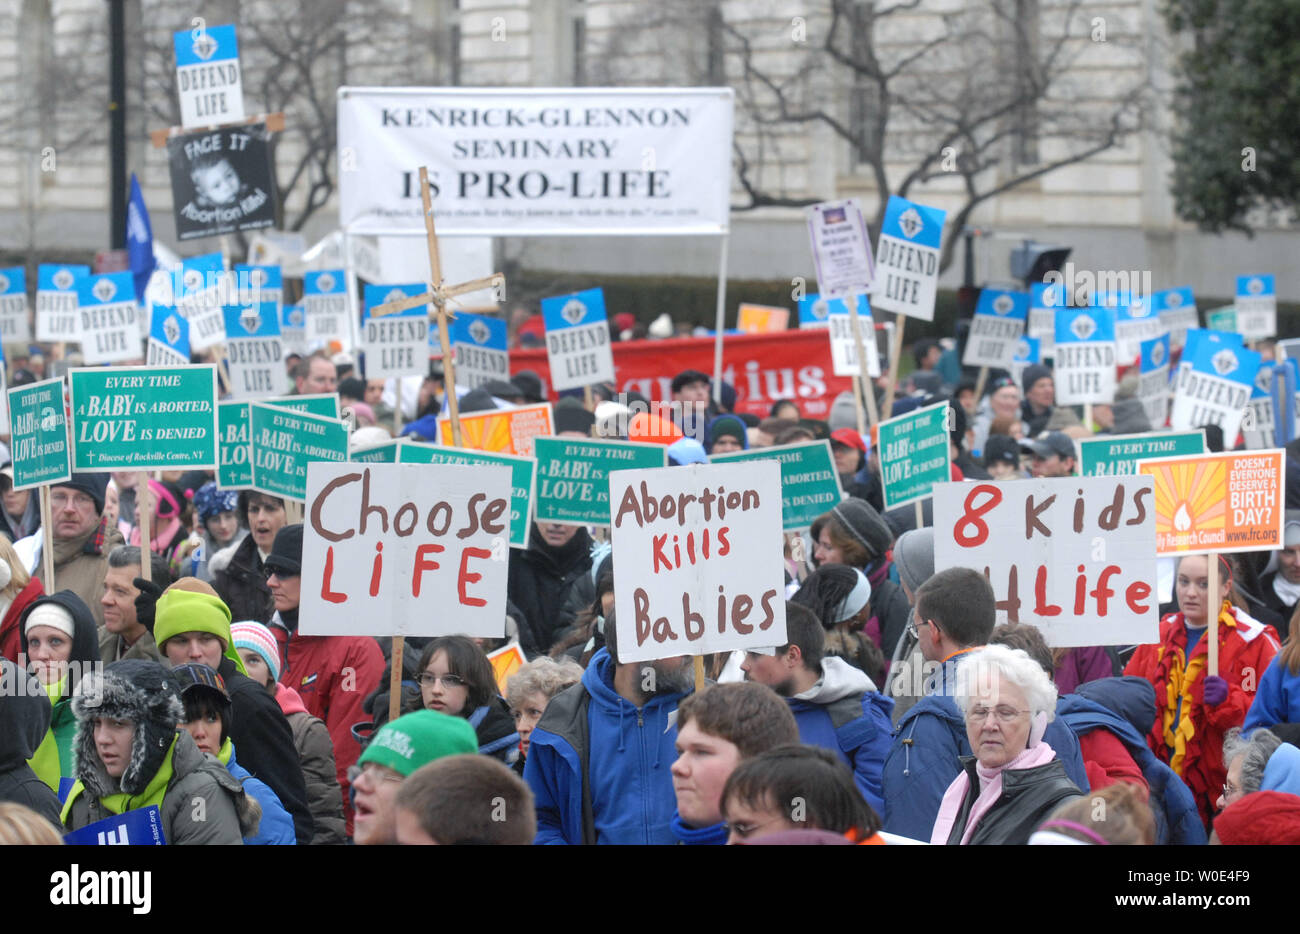 """Pro-life activists take part in the """"March for Life"""" anti-abortion demonstration in Washington on January 22, 2008. The demonstration marked the 35th anniversary of the Supreme Court's 1973 decision in Roe vs Wade making abortions legal. (UPI Photo/Kevin Dietsch) Stock Photo"""